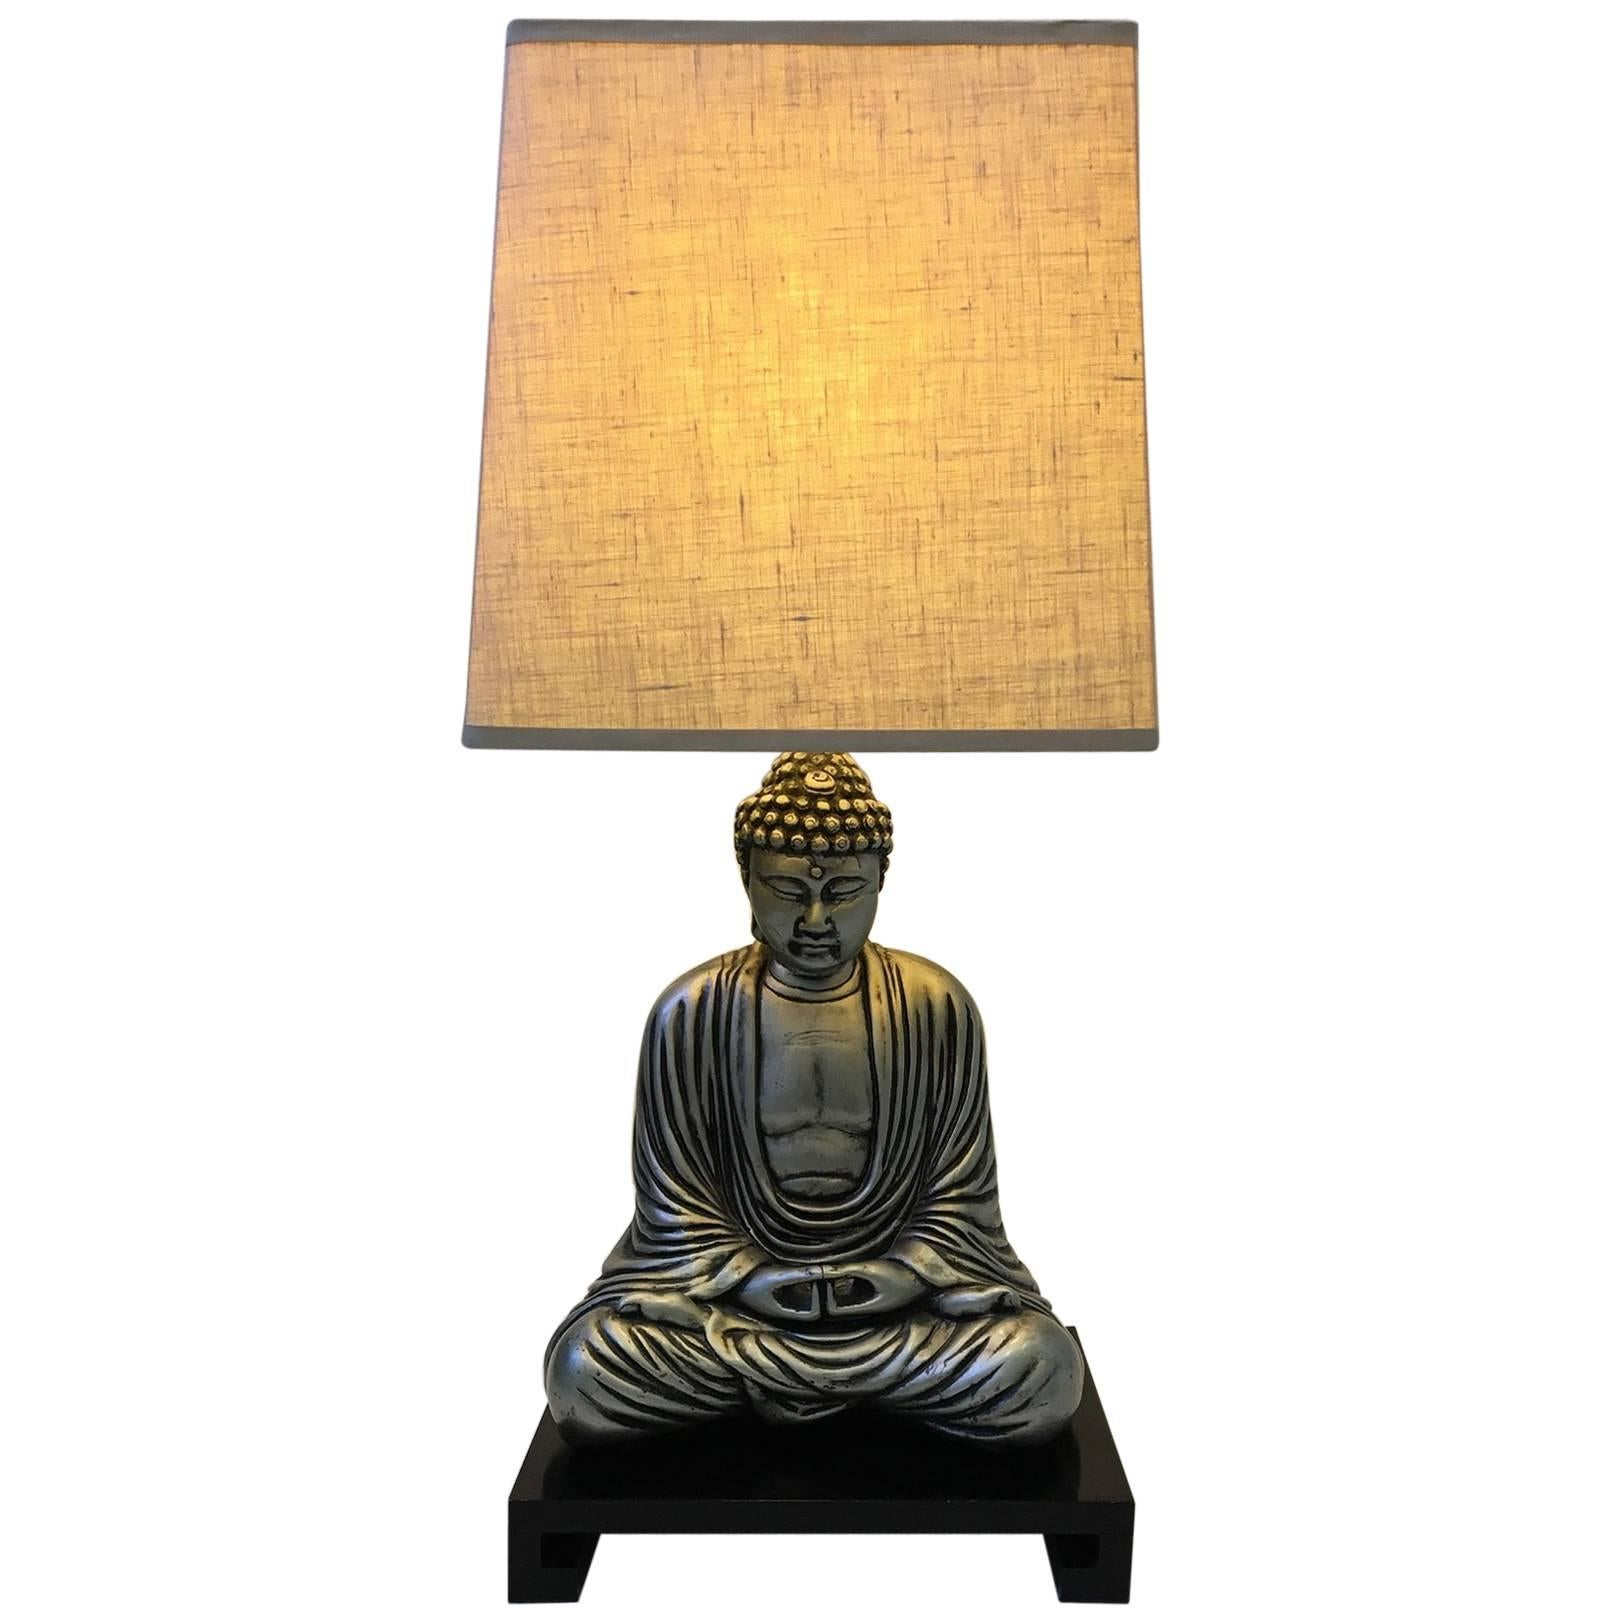 Silver And Black Lacquered Buddha Table Lamp In The Style Of James Mont